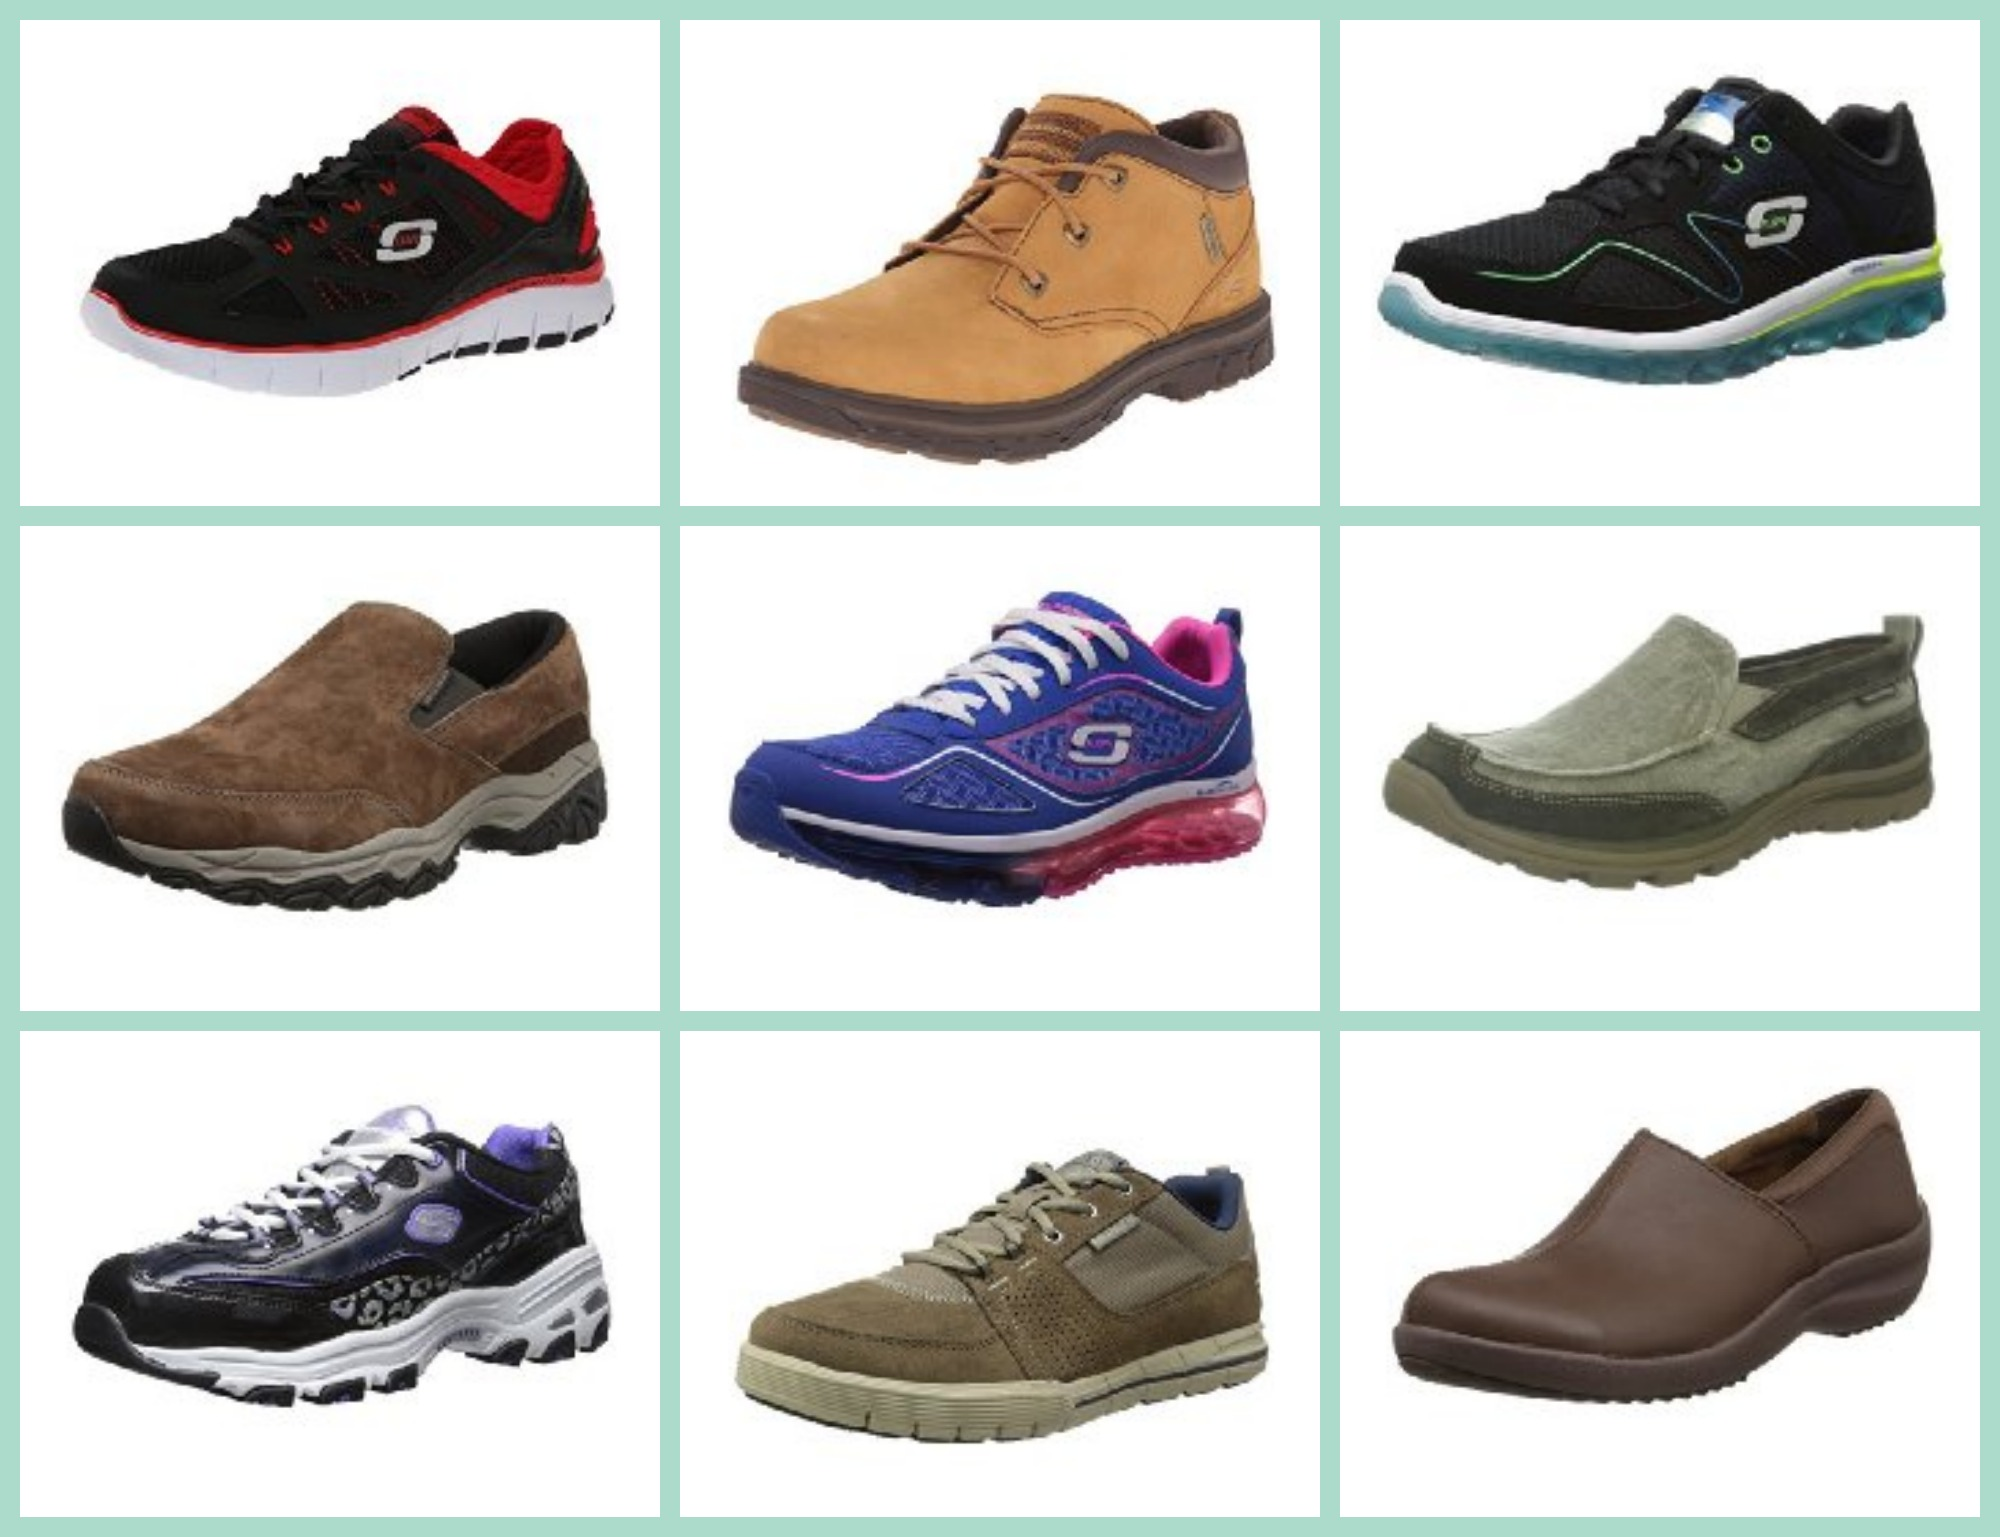 4e531491f1f5 50% Off Skechers Shoes - Today Only!